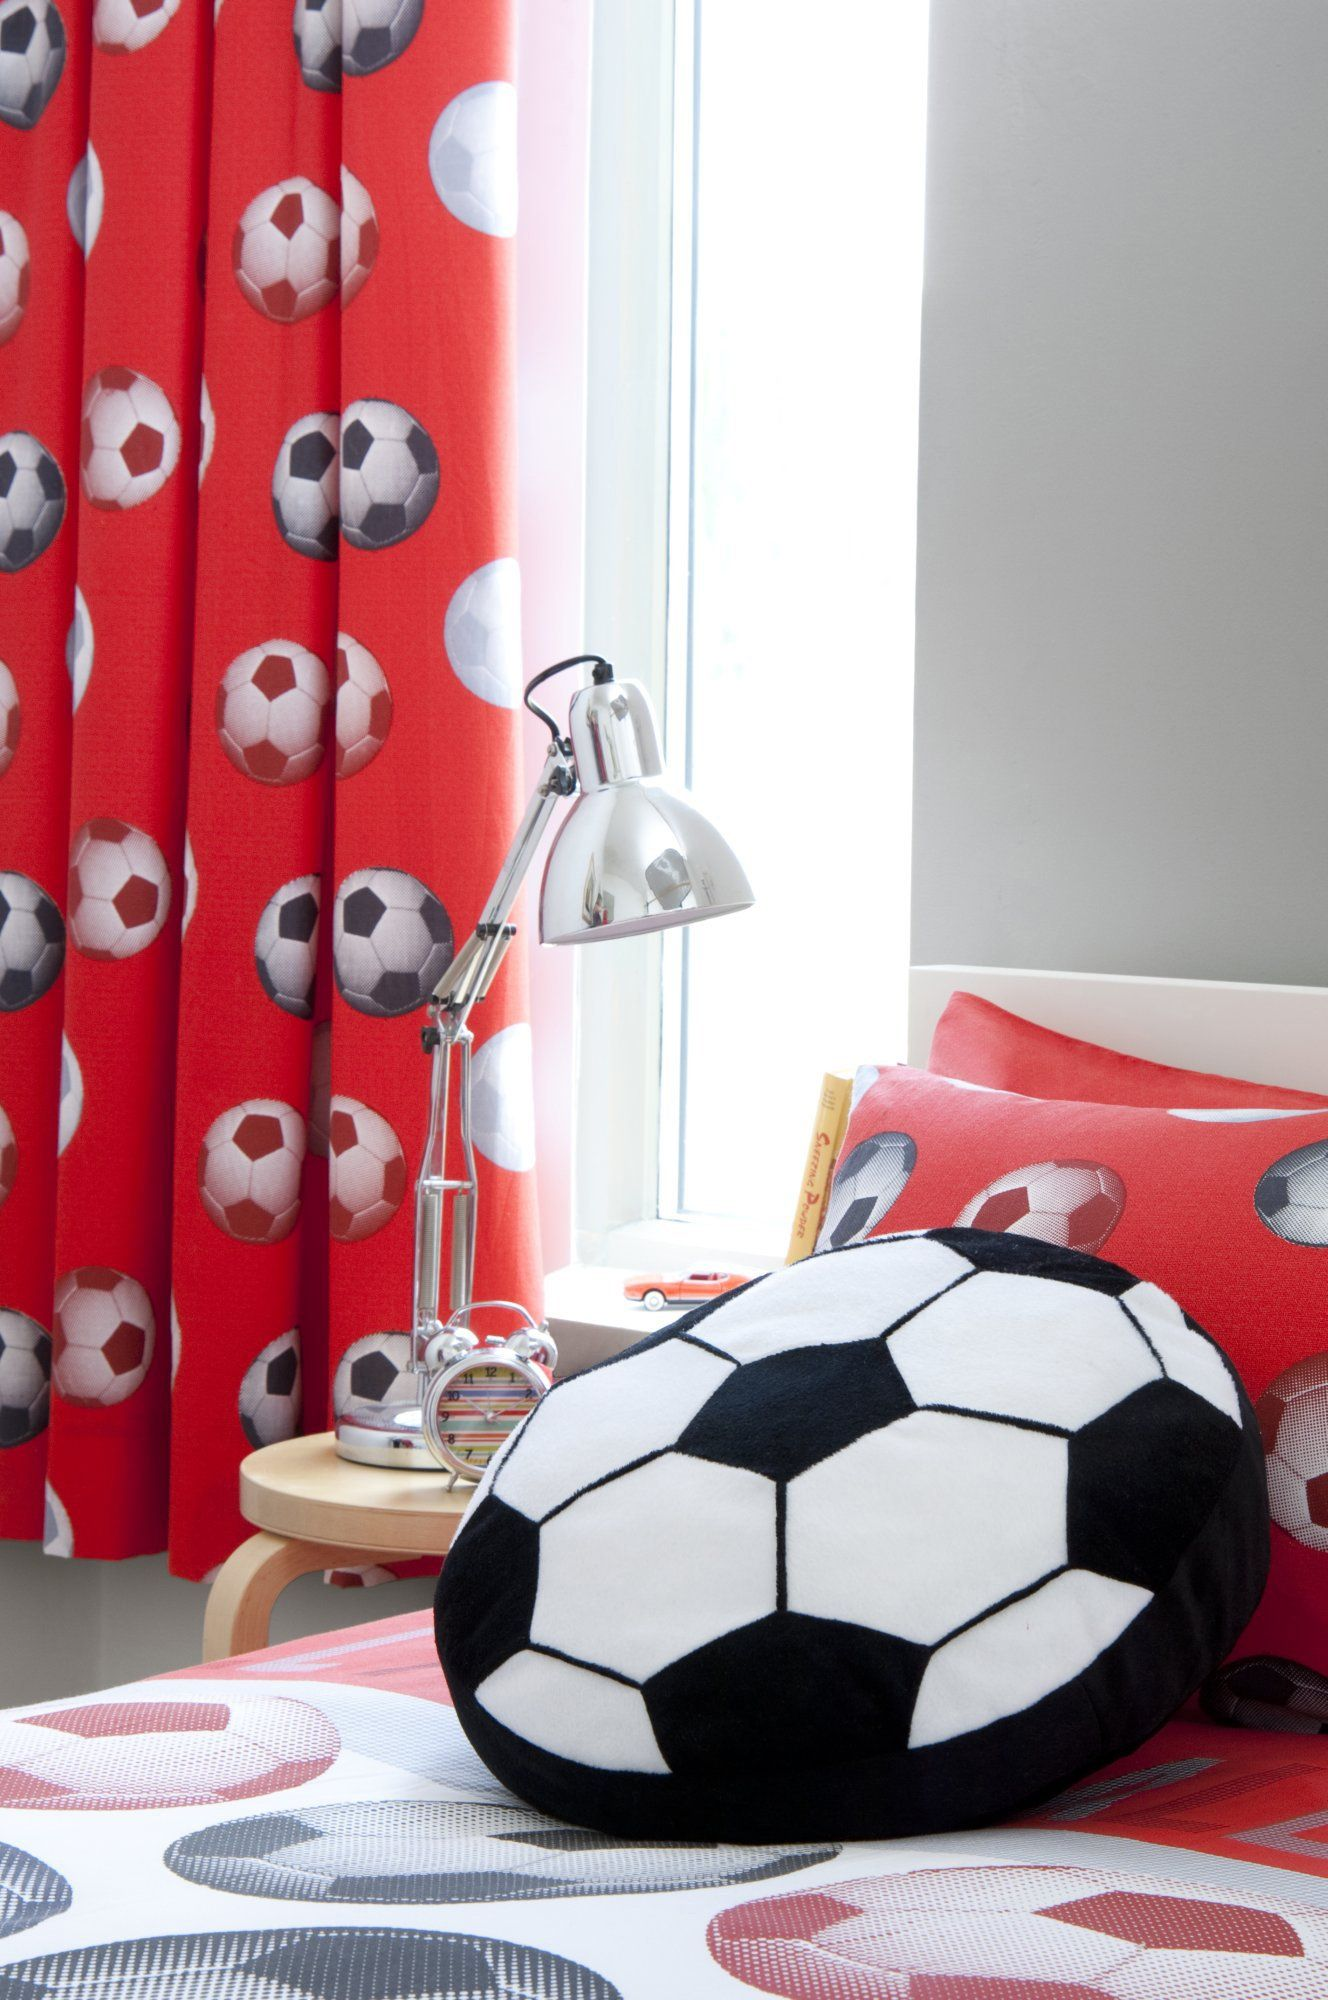 Buy Catherine Lansfield Football Curtains 165cmx180cm Red Curtains Argos In 2020 Boys Room Decor Little Boy Bedroom Ideas Bedroom Themes